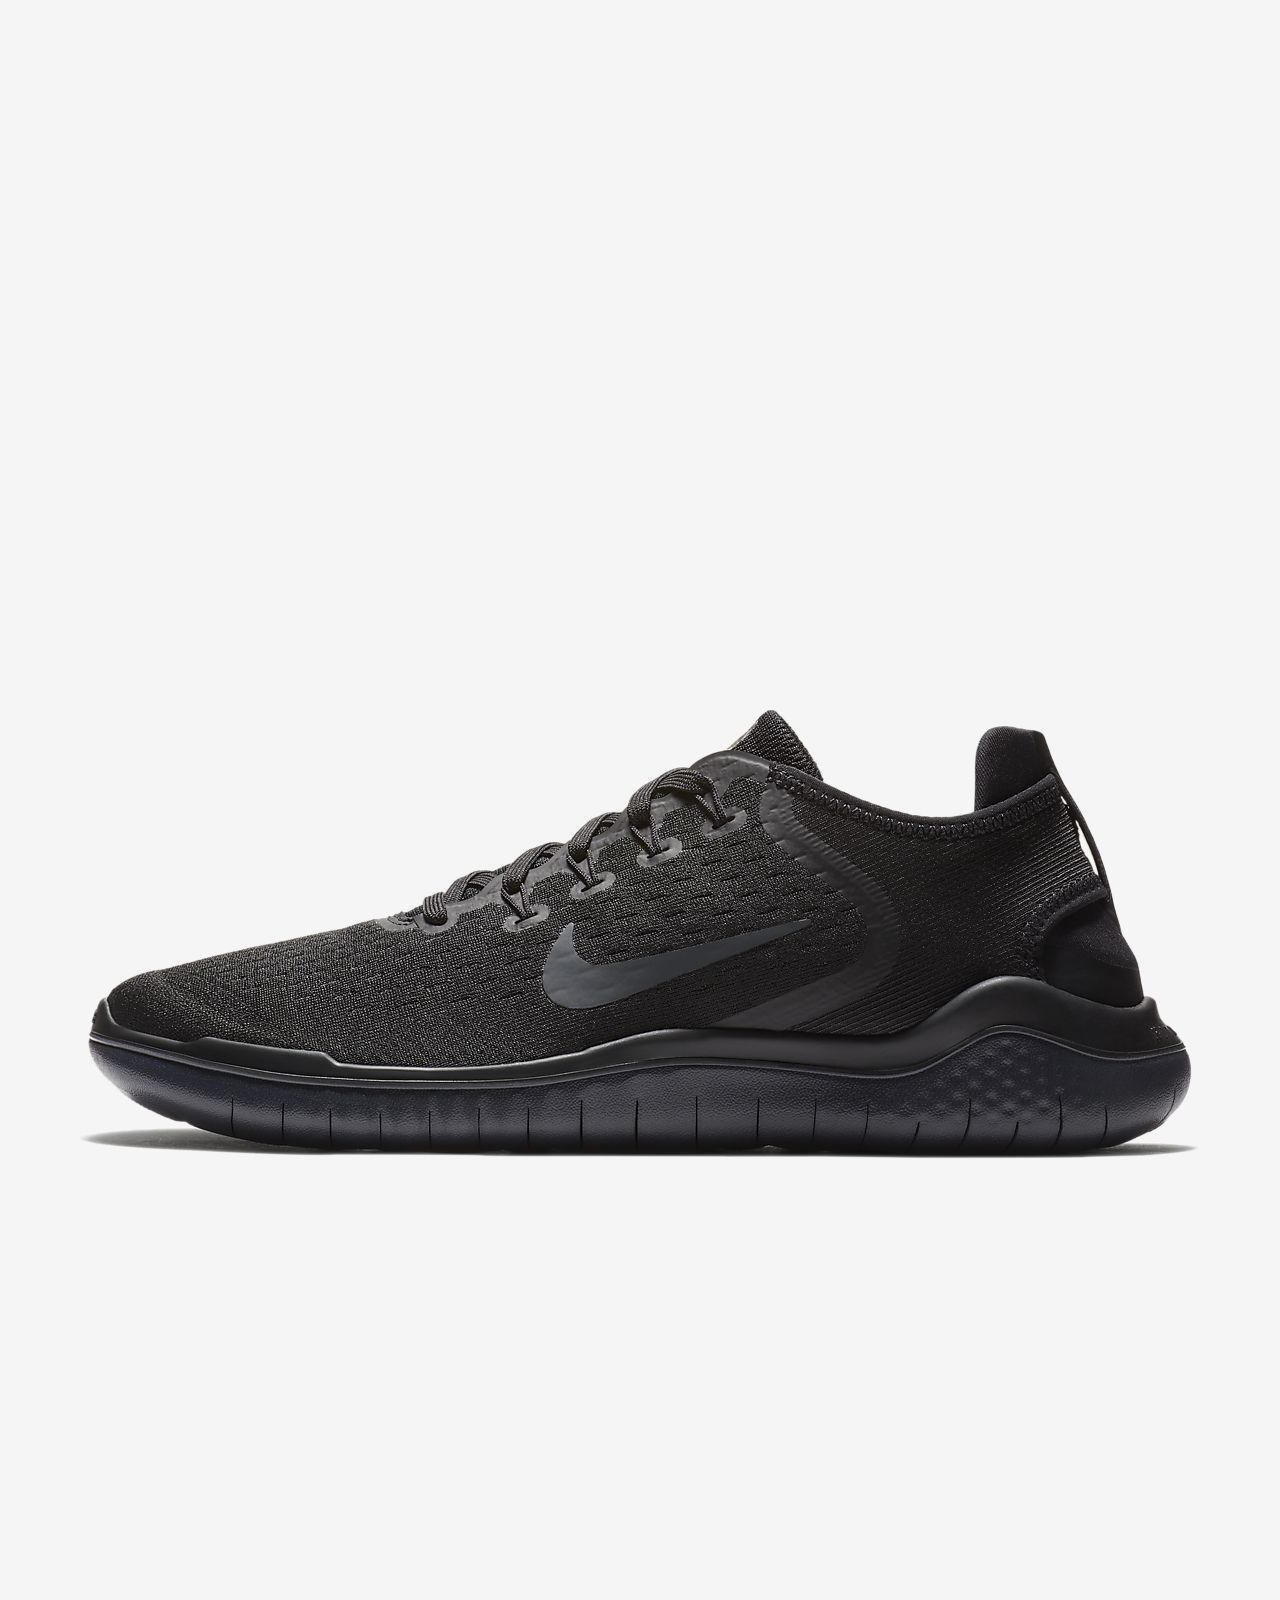 big sale 3434e 31f55 ... Nike Free RN 2018 Men s Running Shoe